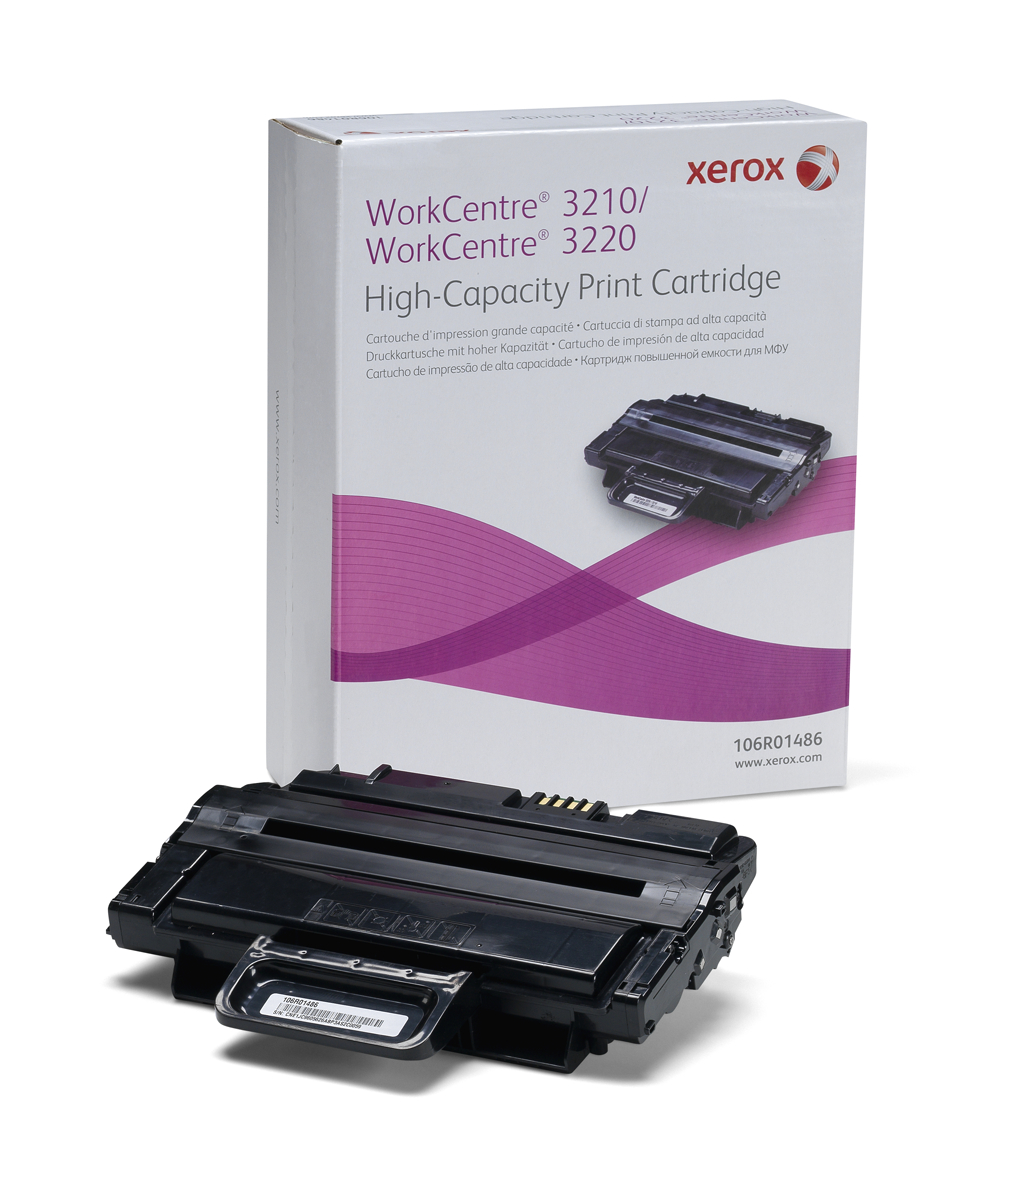 Xerox Workcentre 3210/3220 Toner Cartridge - 5,000 pages